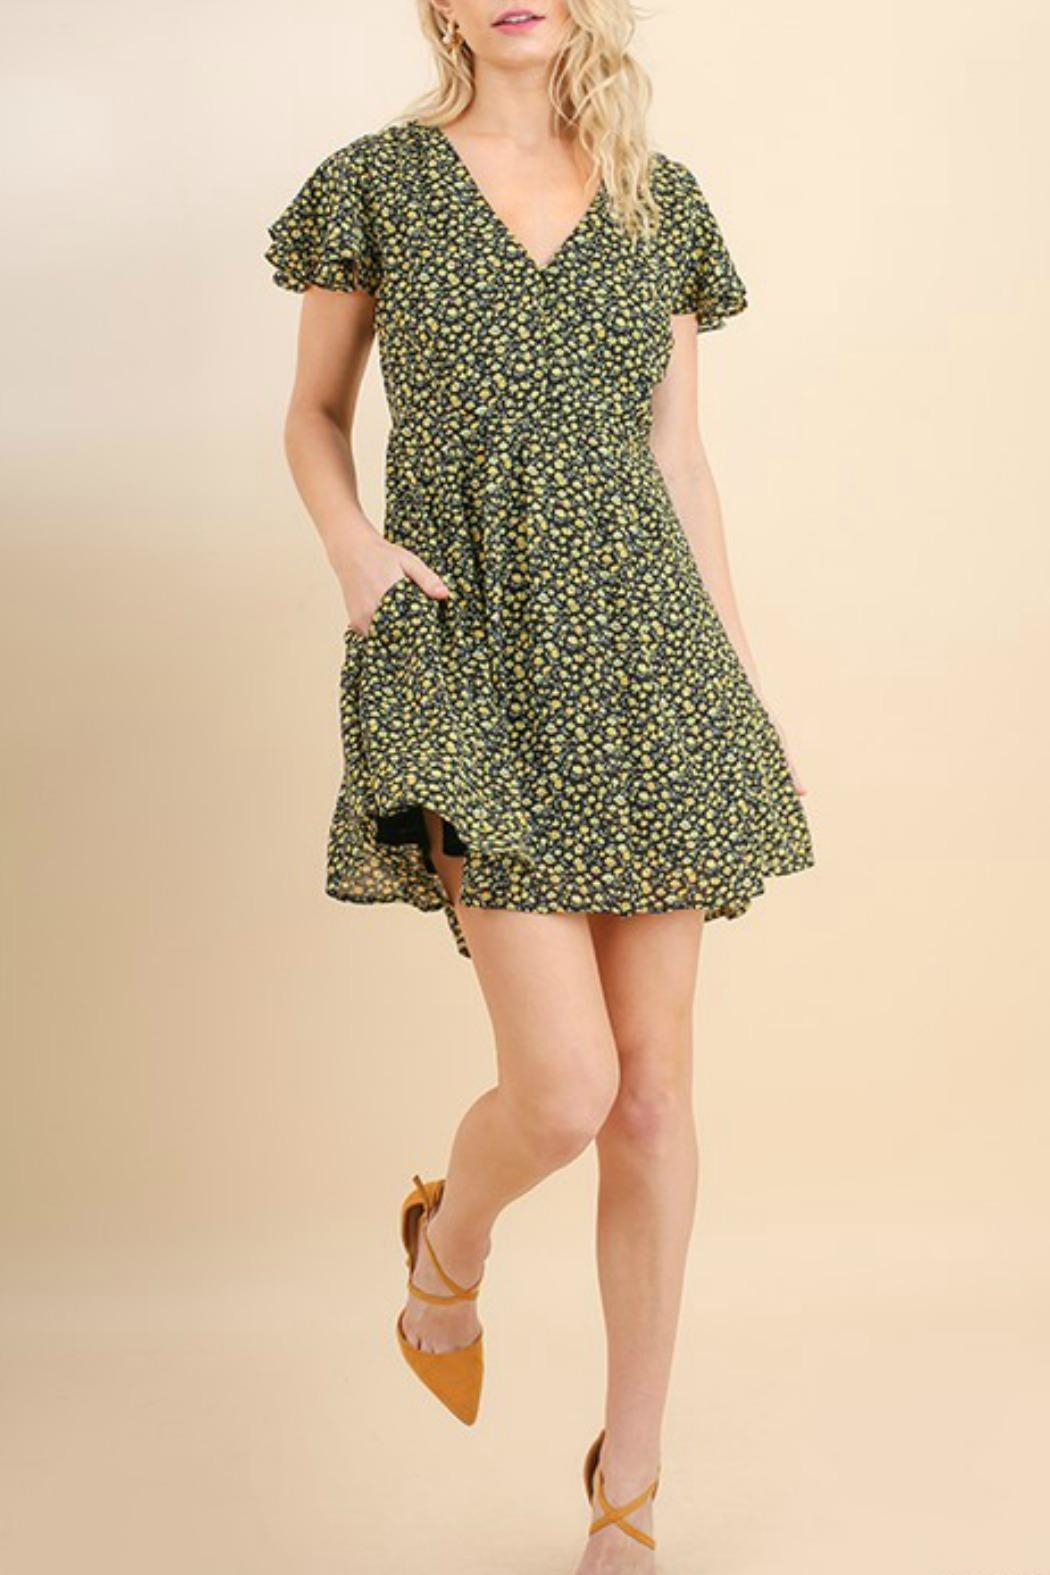 Umgee USA Floral Skater Dress - Main Image